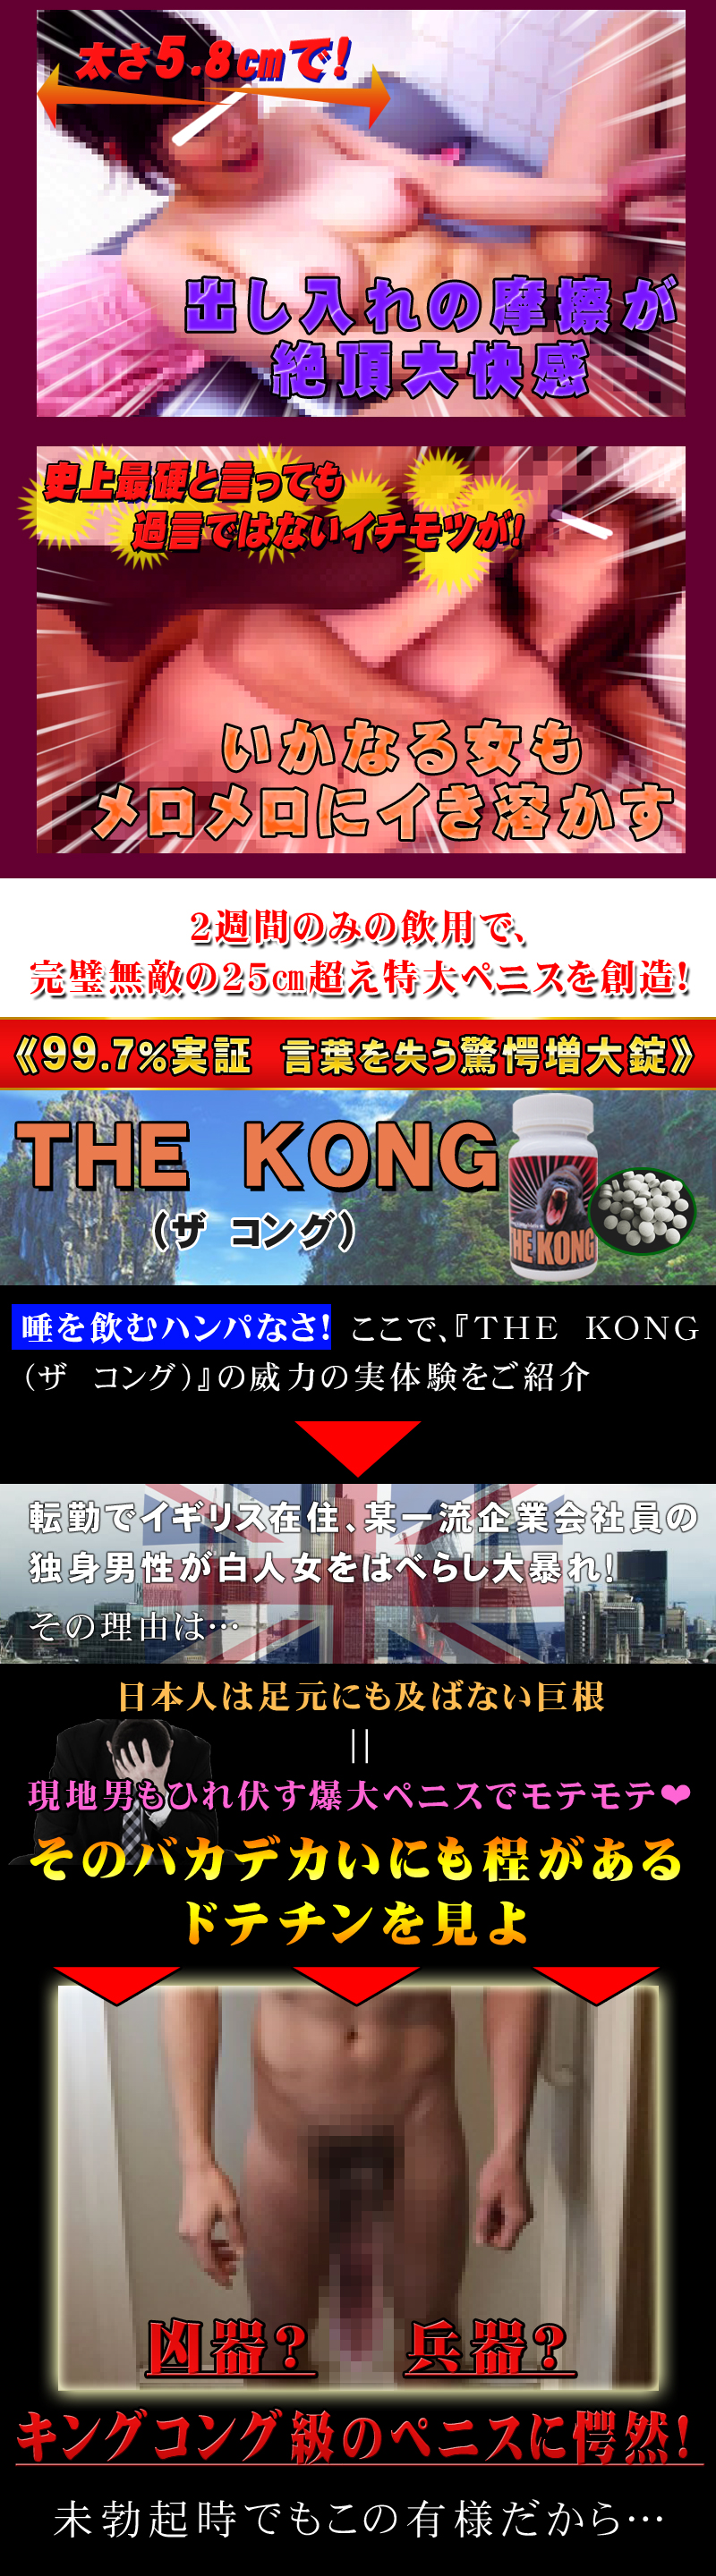 THE KONG(コング)